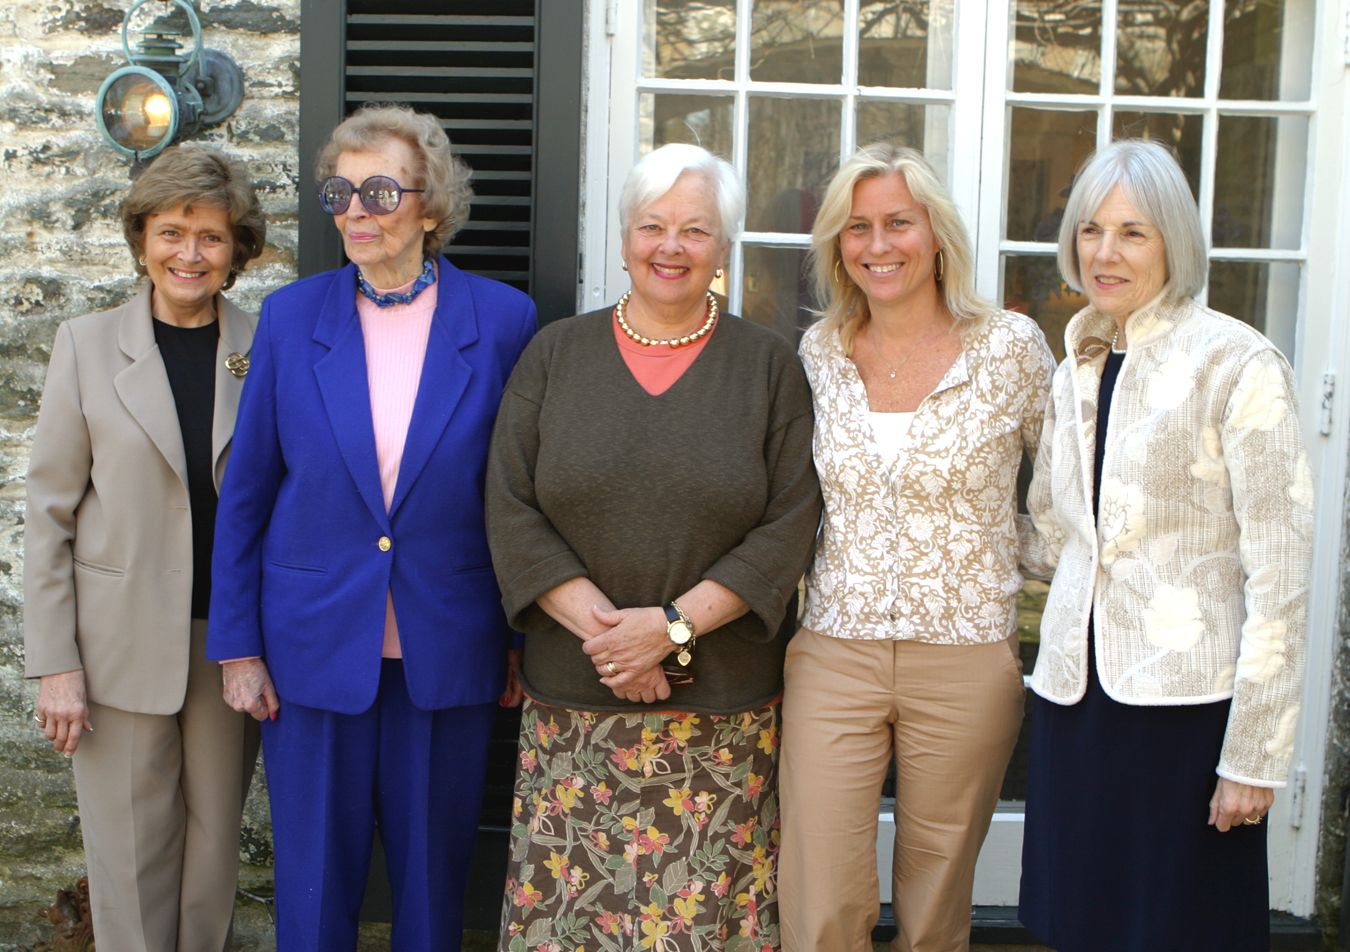 Five AKM Award winners gather at Covert. From left they are: Mary Louise Leioheimer, Nany Redmond Manierre. Axie Diana '60, Sally Bartholomay Downey '78 and Beth Lamond.